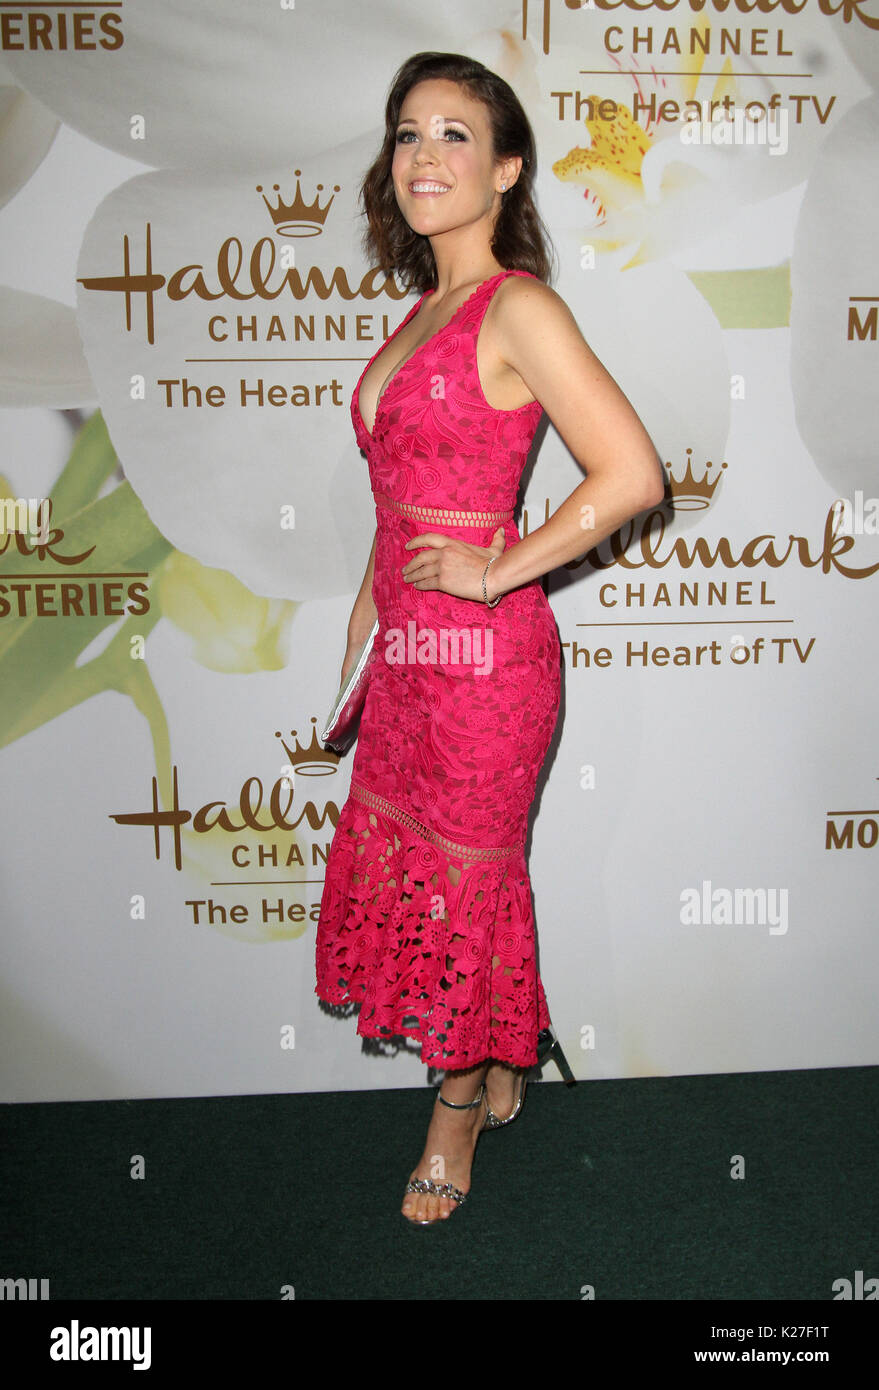 Erin krakow stock photos erin krakow stock images alamy for Hallmark movies and mysteries channel